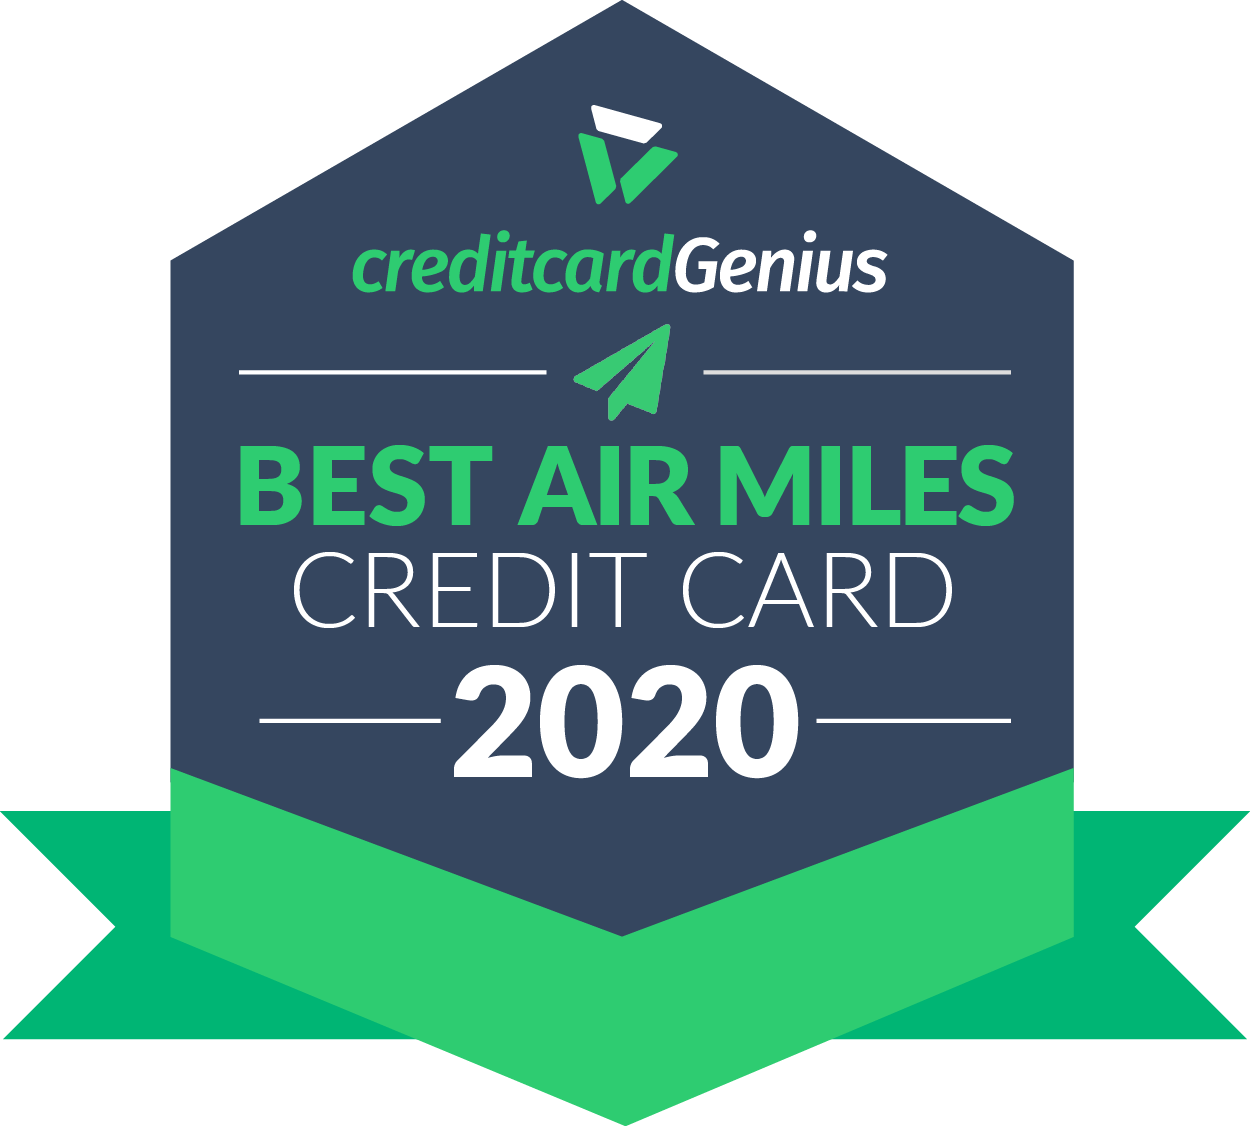 Best AIR MILES credit card in Canada for 2020 award seal